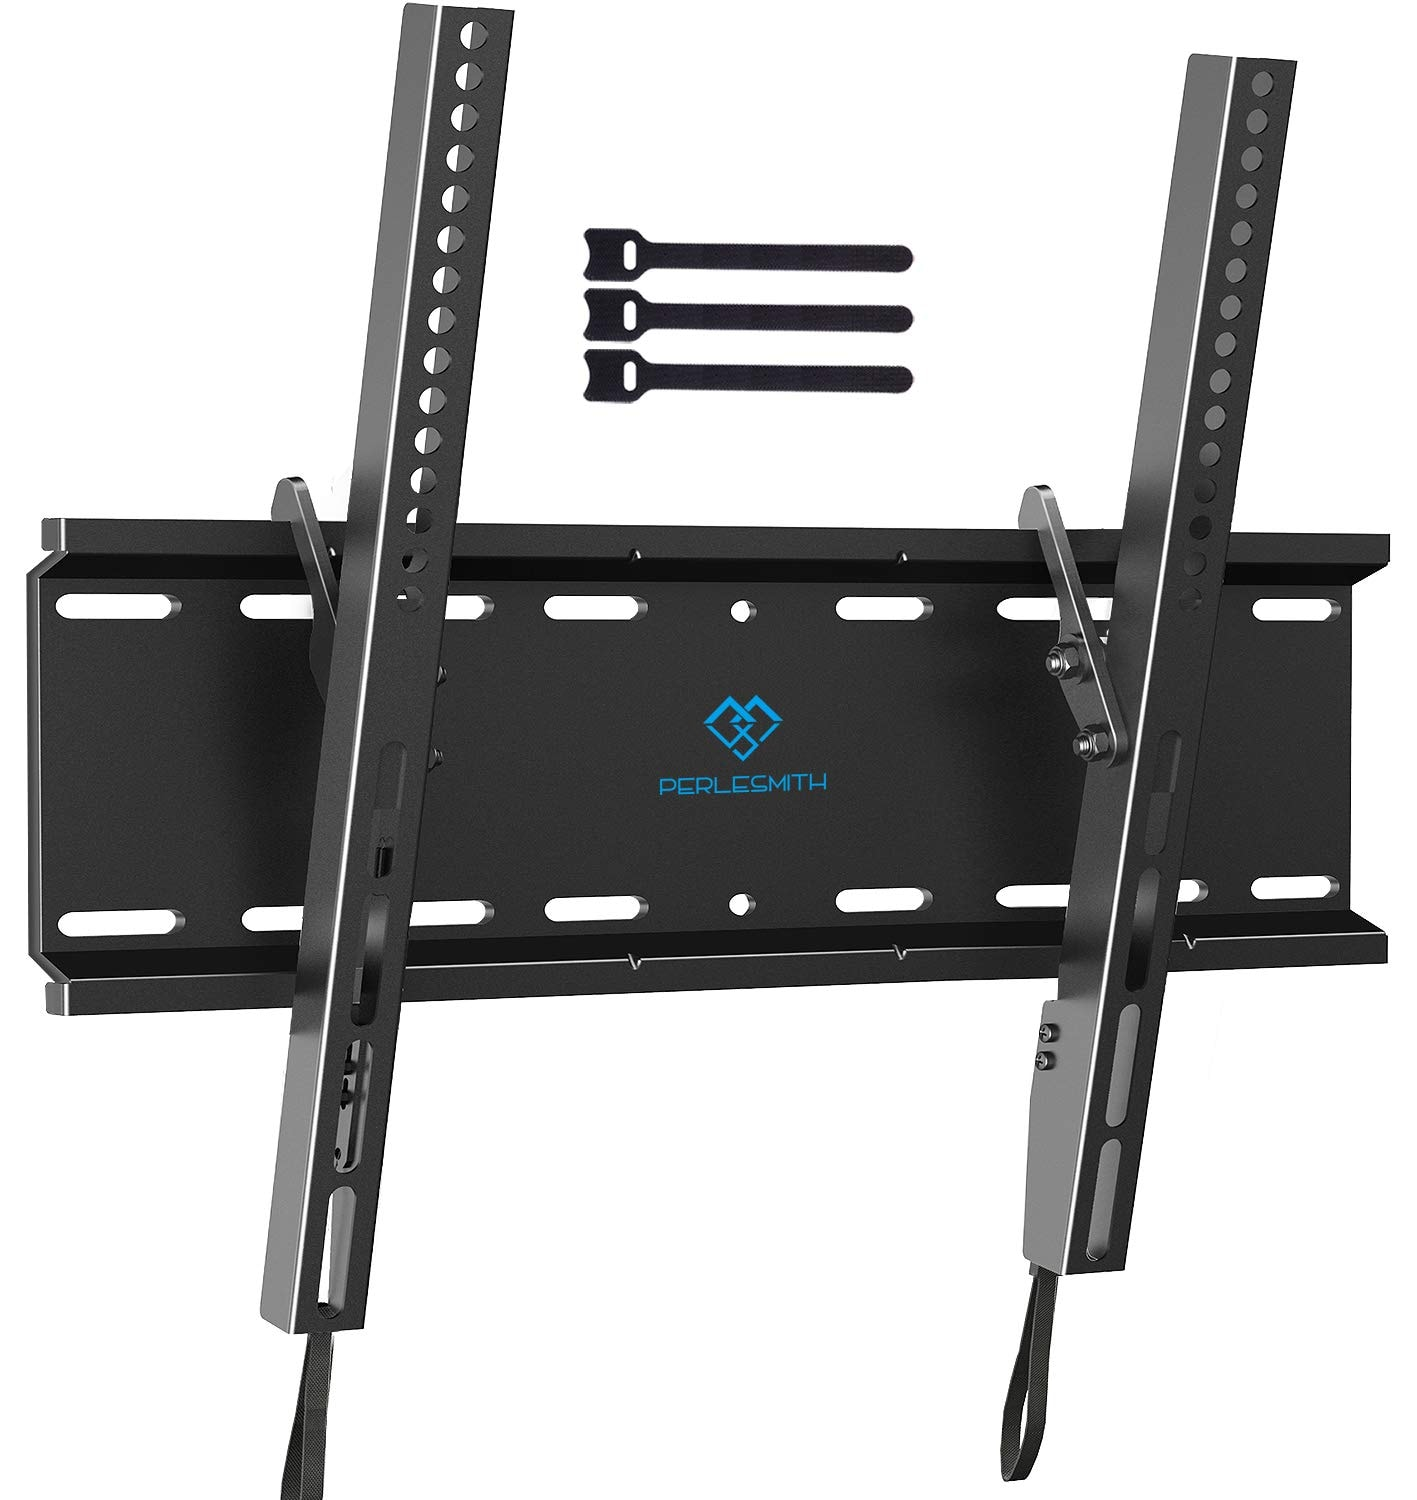 Tilting TV Wall Mount Bracket ($9.44 AC) Low Profile for Most 23-55 Inch LED, LCD, OLED, Plasma Flat Screen TVs with VESA 400x400mm Weight up to 115lbs by PERLESMITH at Amazon